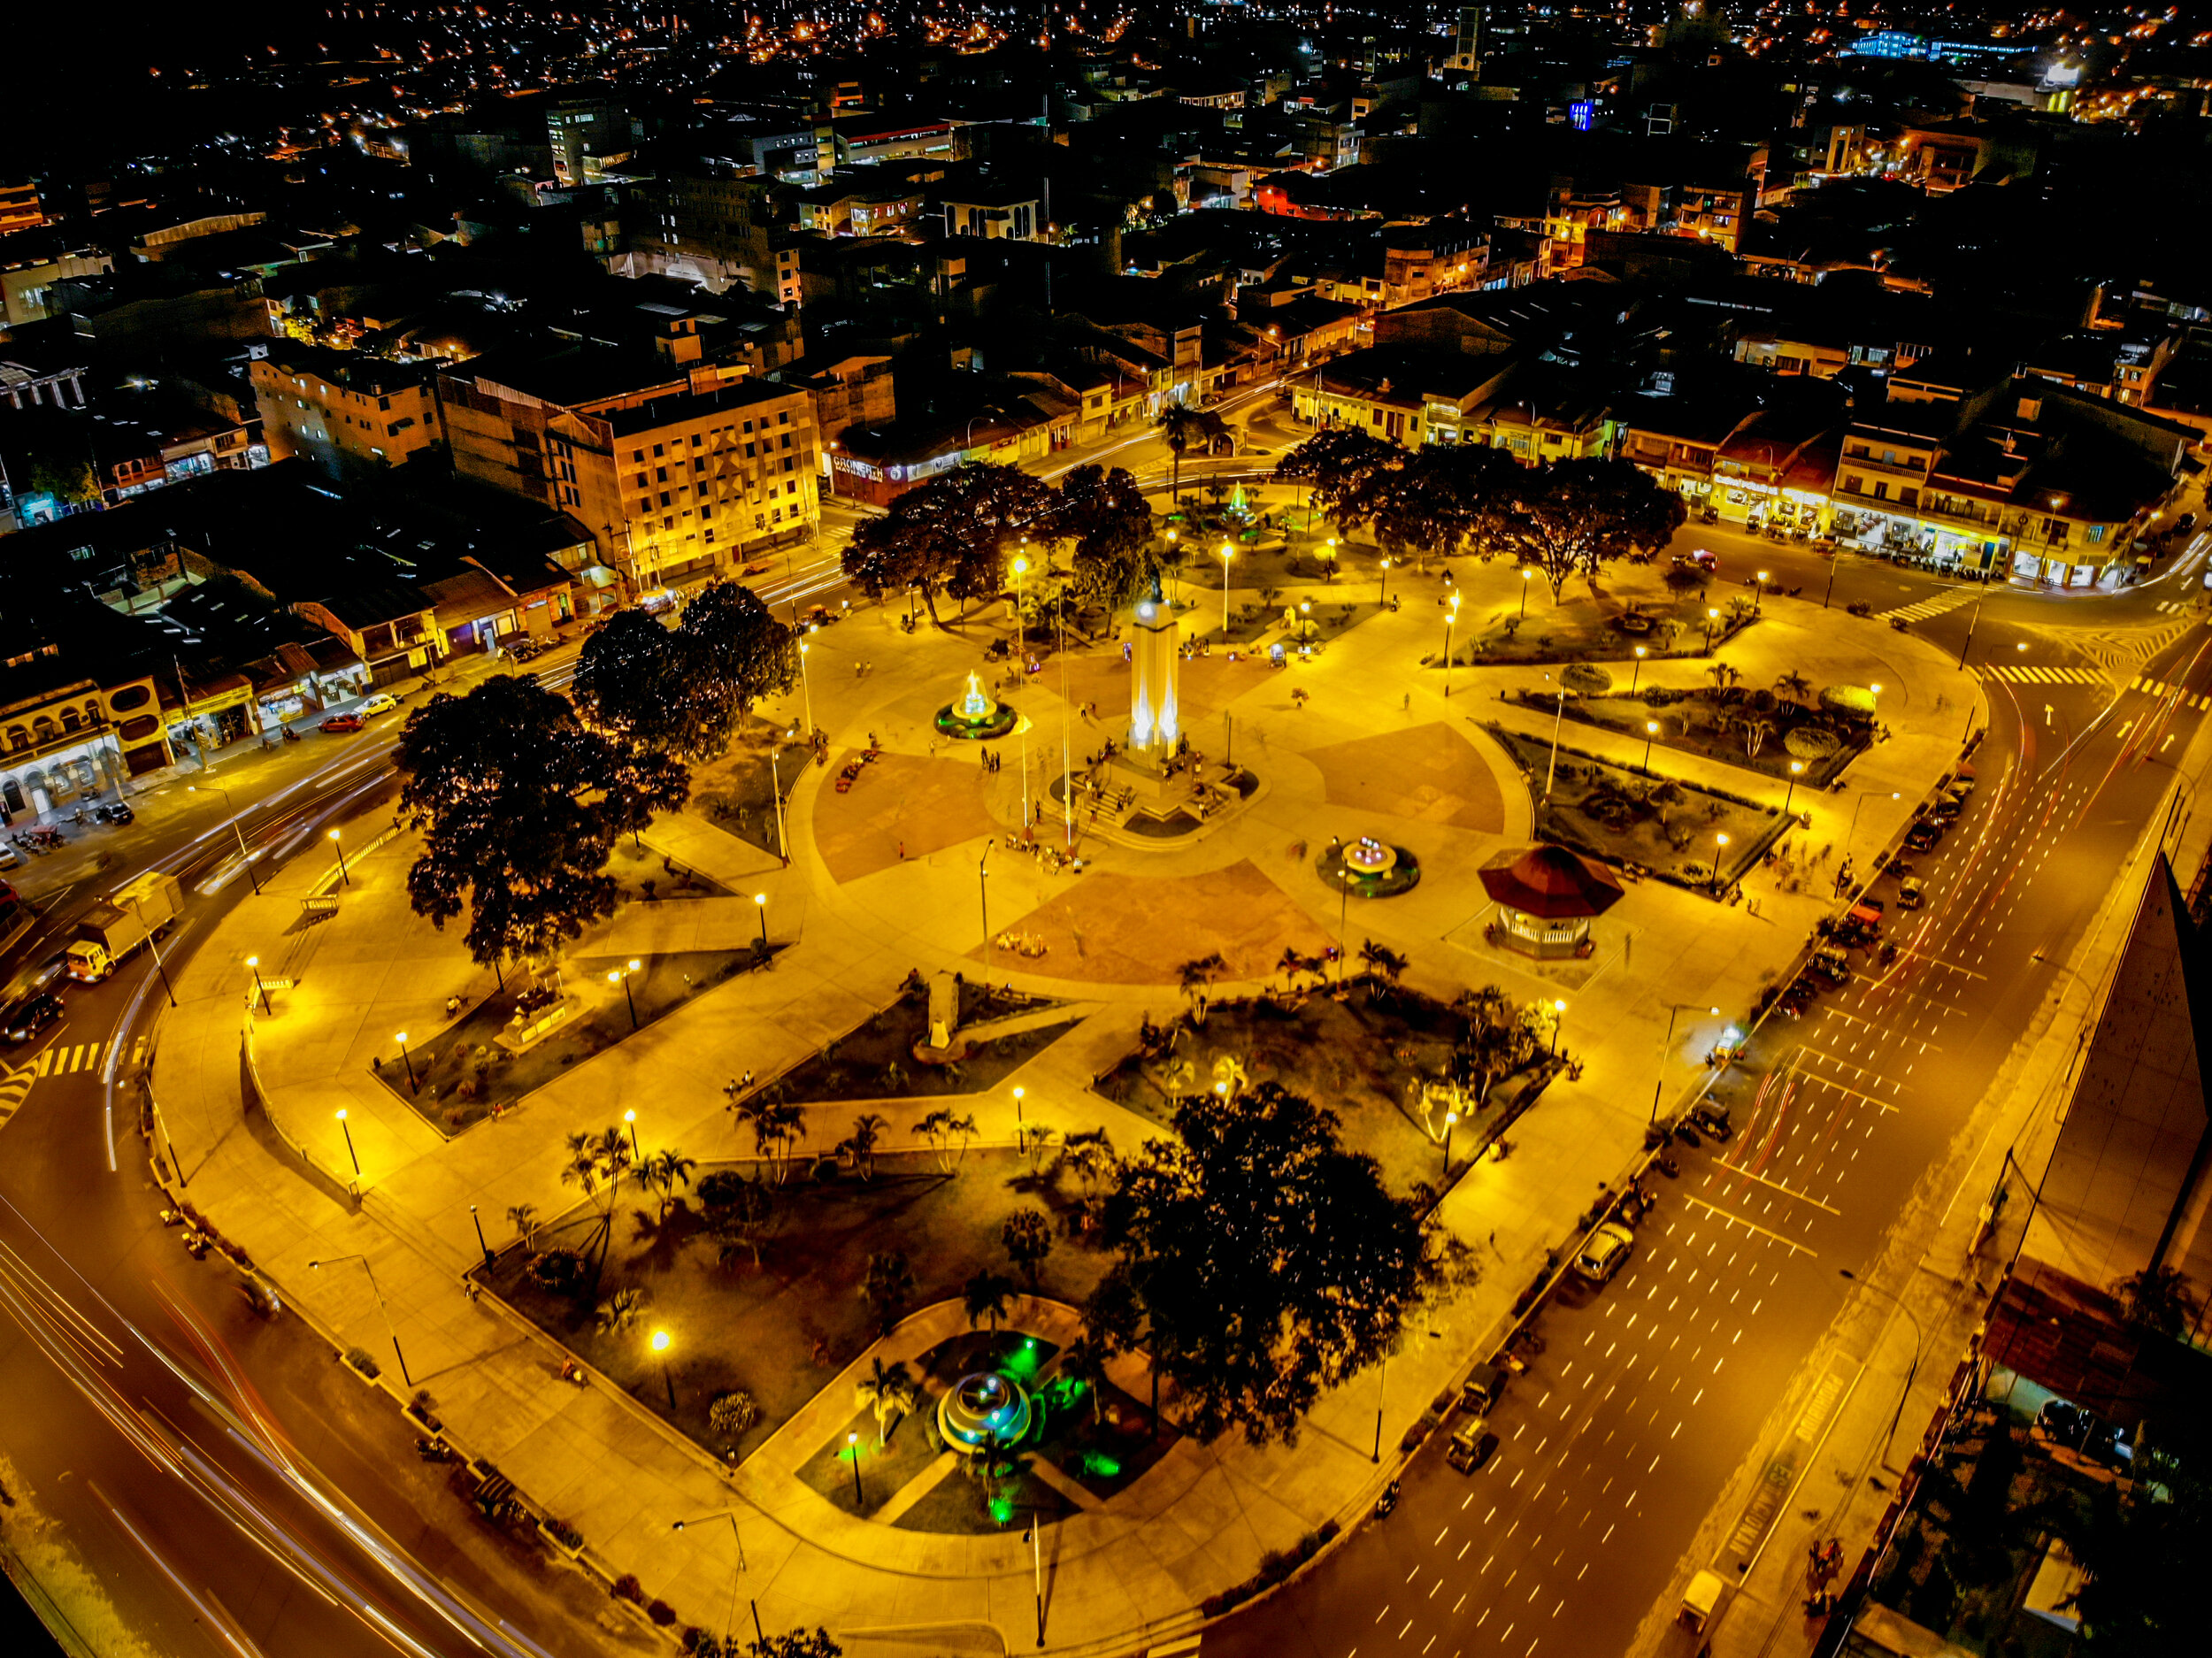 This photo shows Iquitos' main square, the plaza de armas, at night. Iquitos is a bustling city of more than 400,000 individuals!